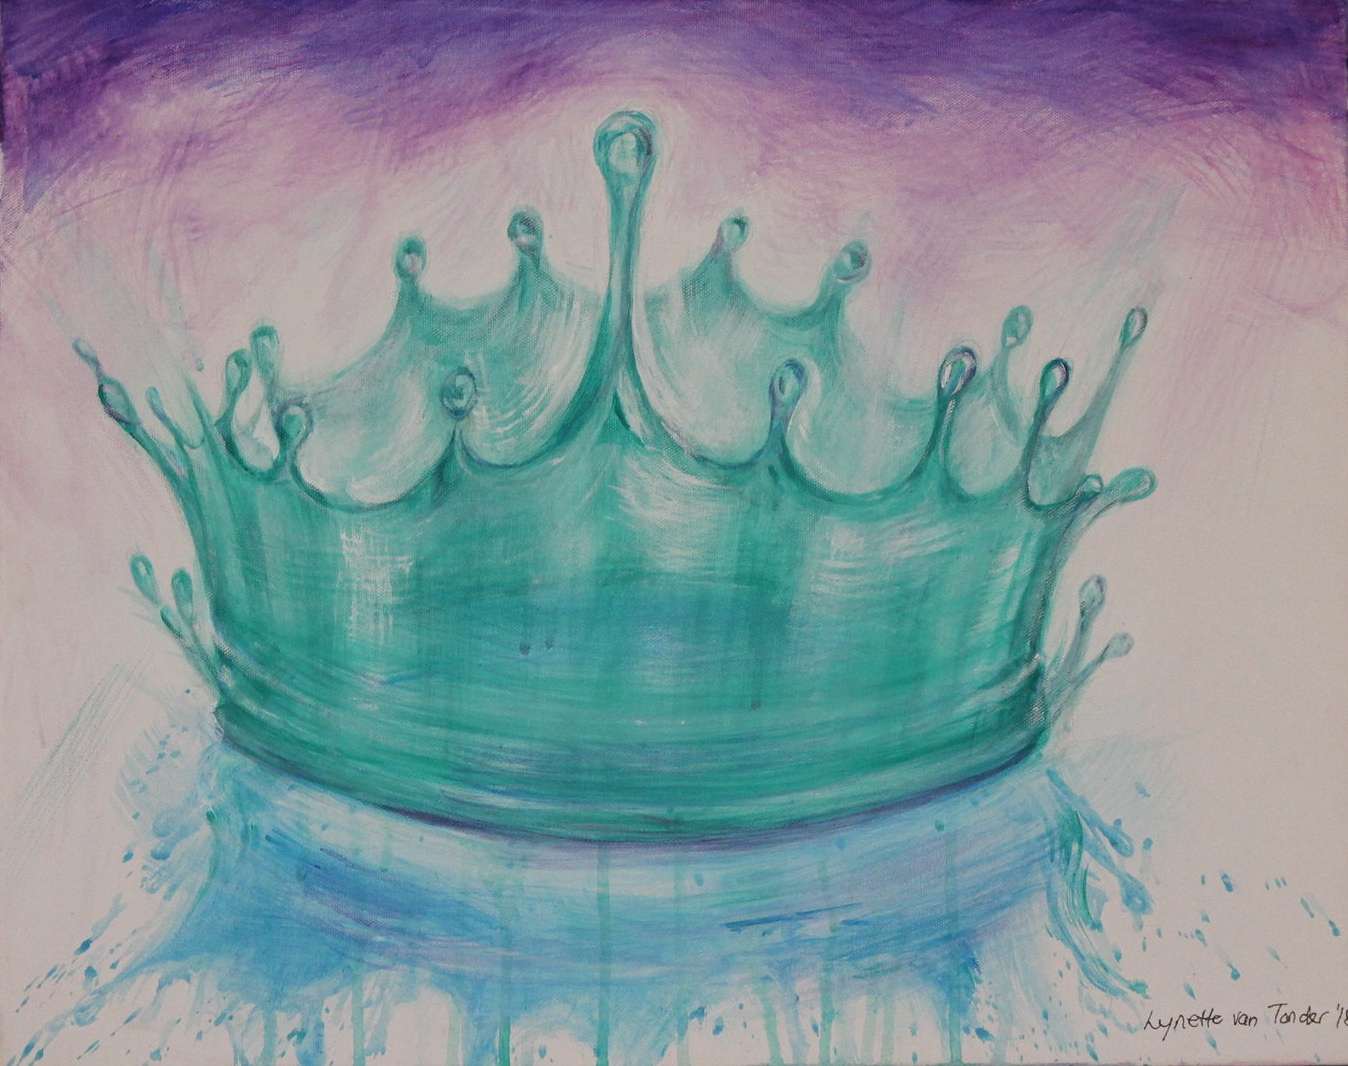 Crowned with His Presence